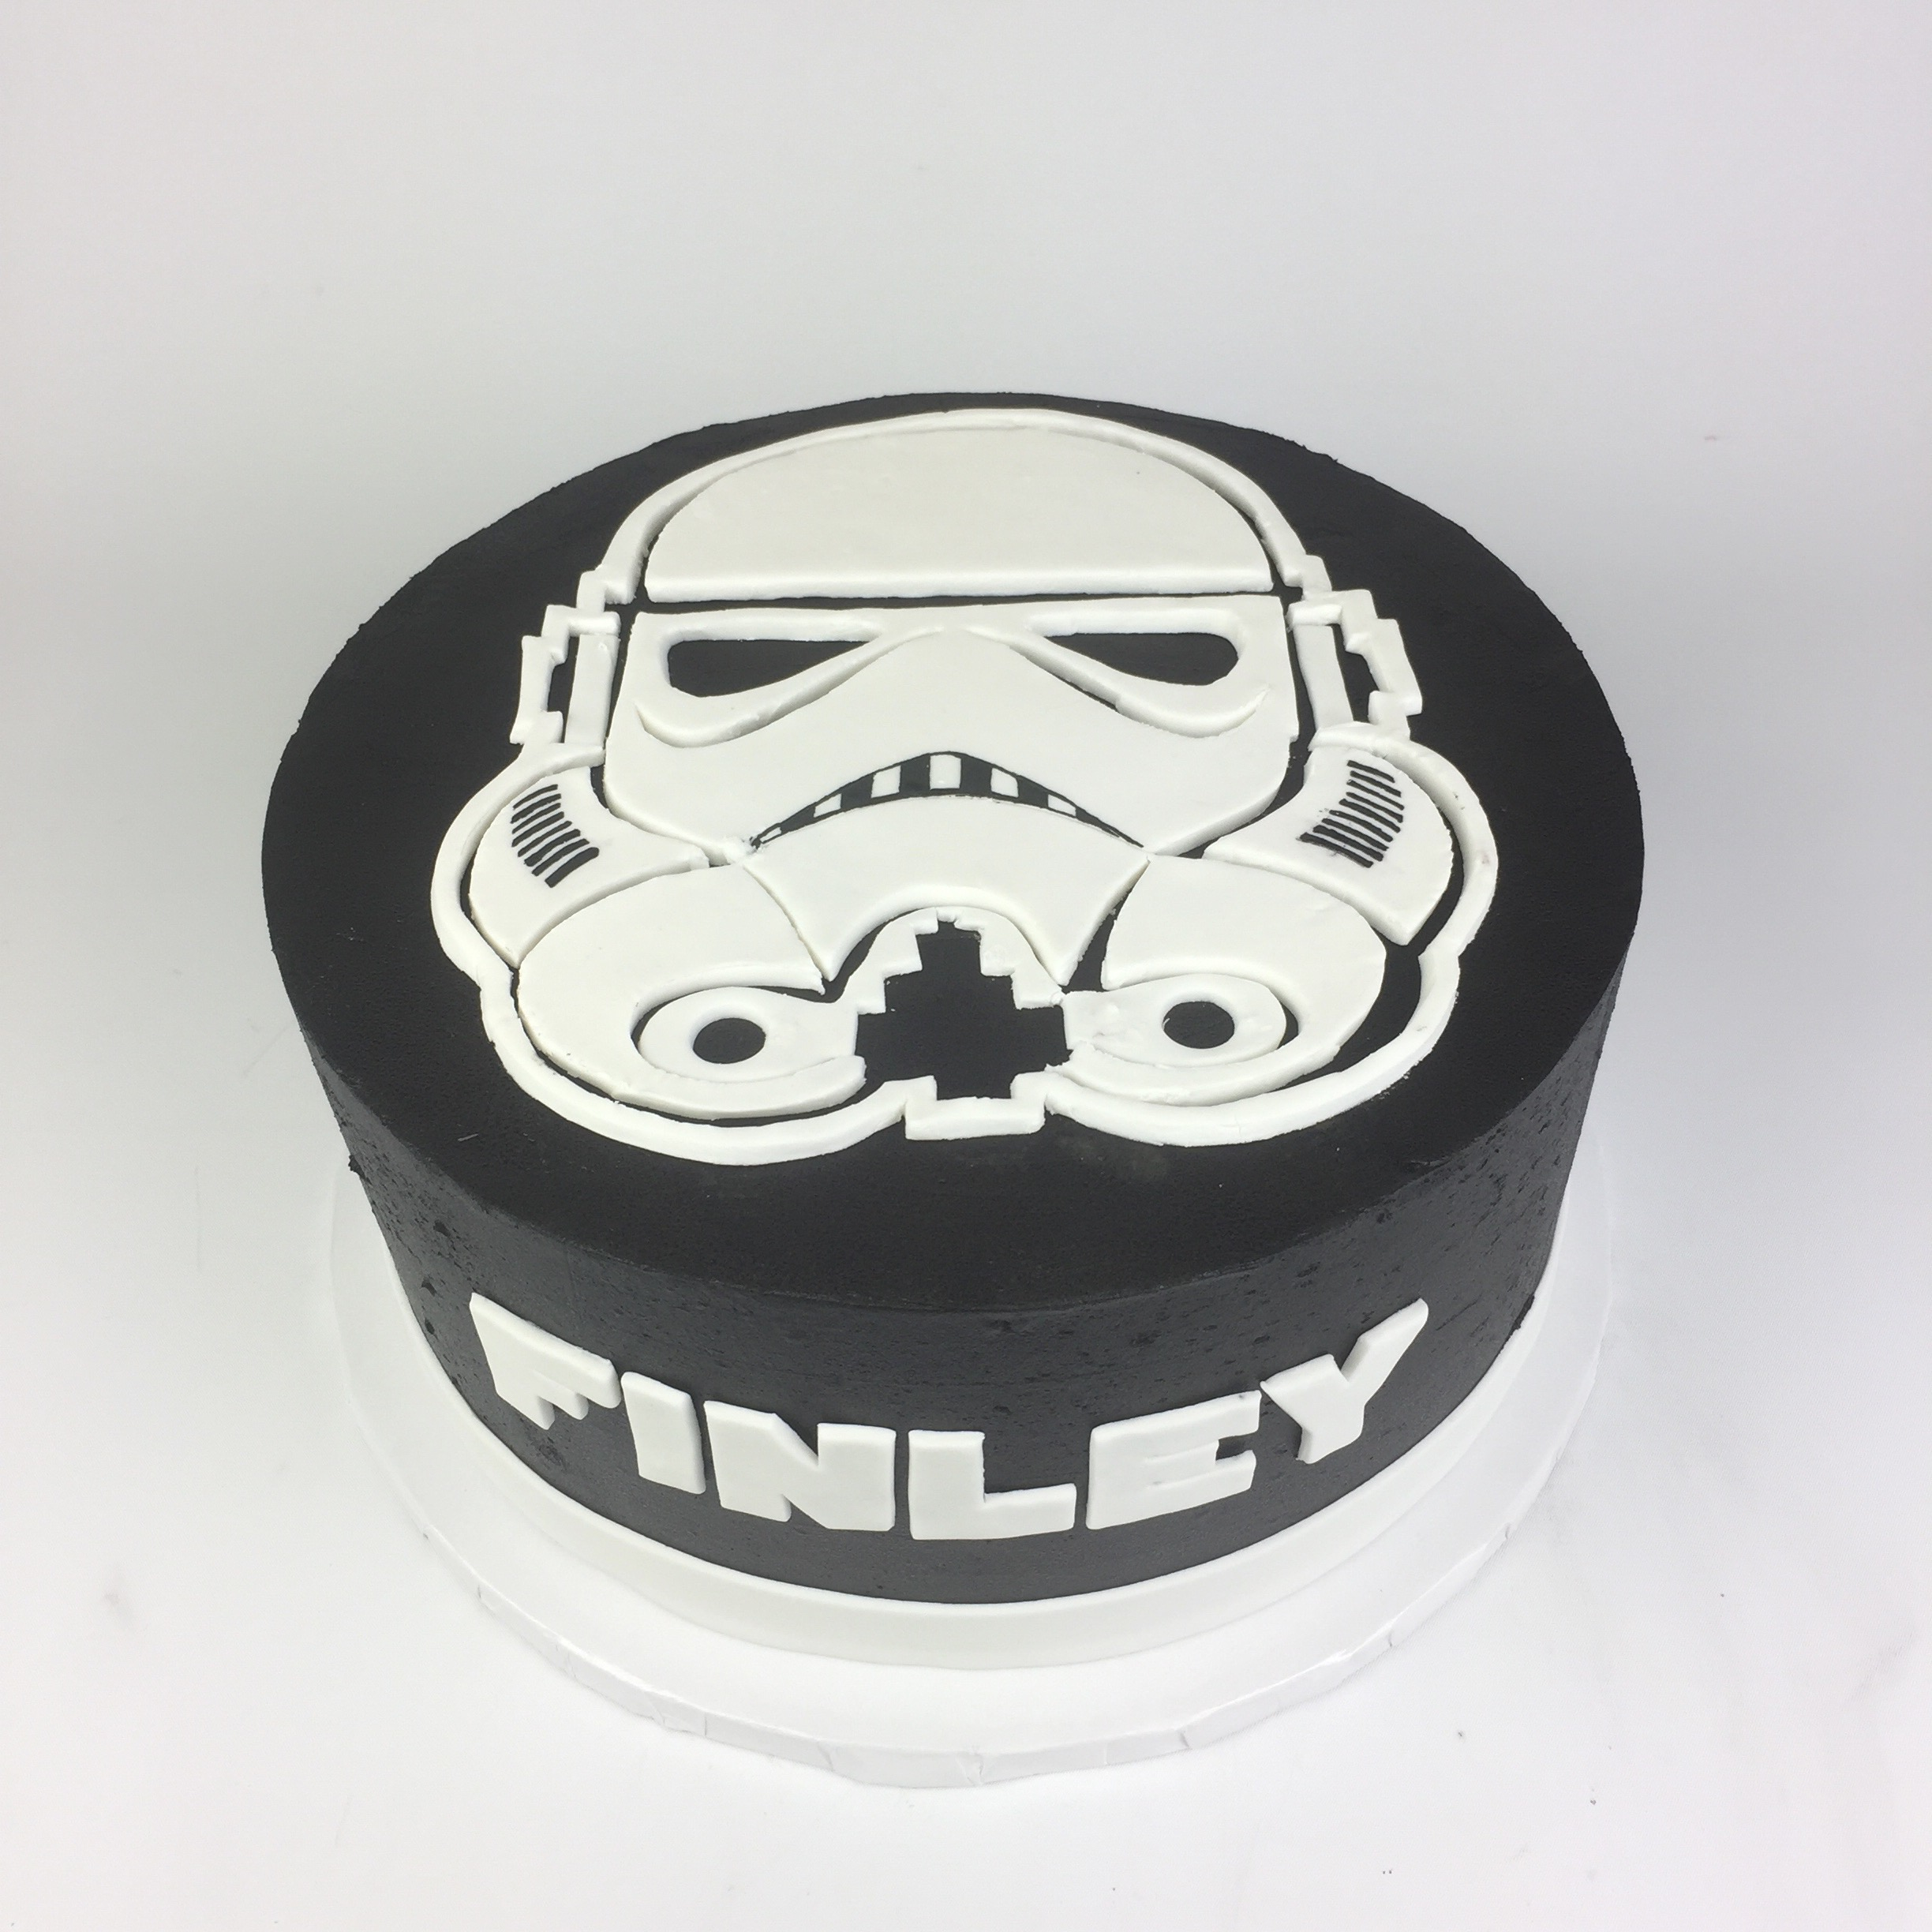 Sensational Stormtrooper Cake Rach Makes Cakes Personalised Birthday Cards Paralily Jamesorg